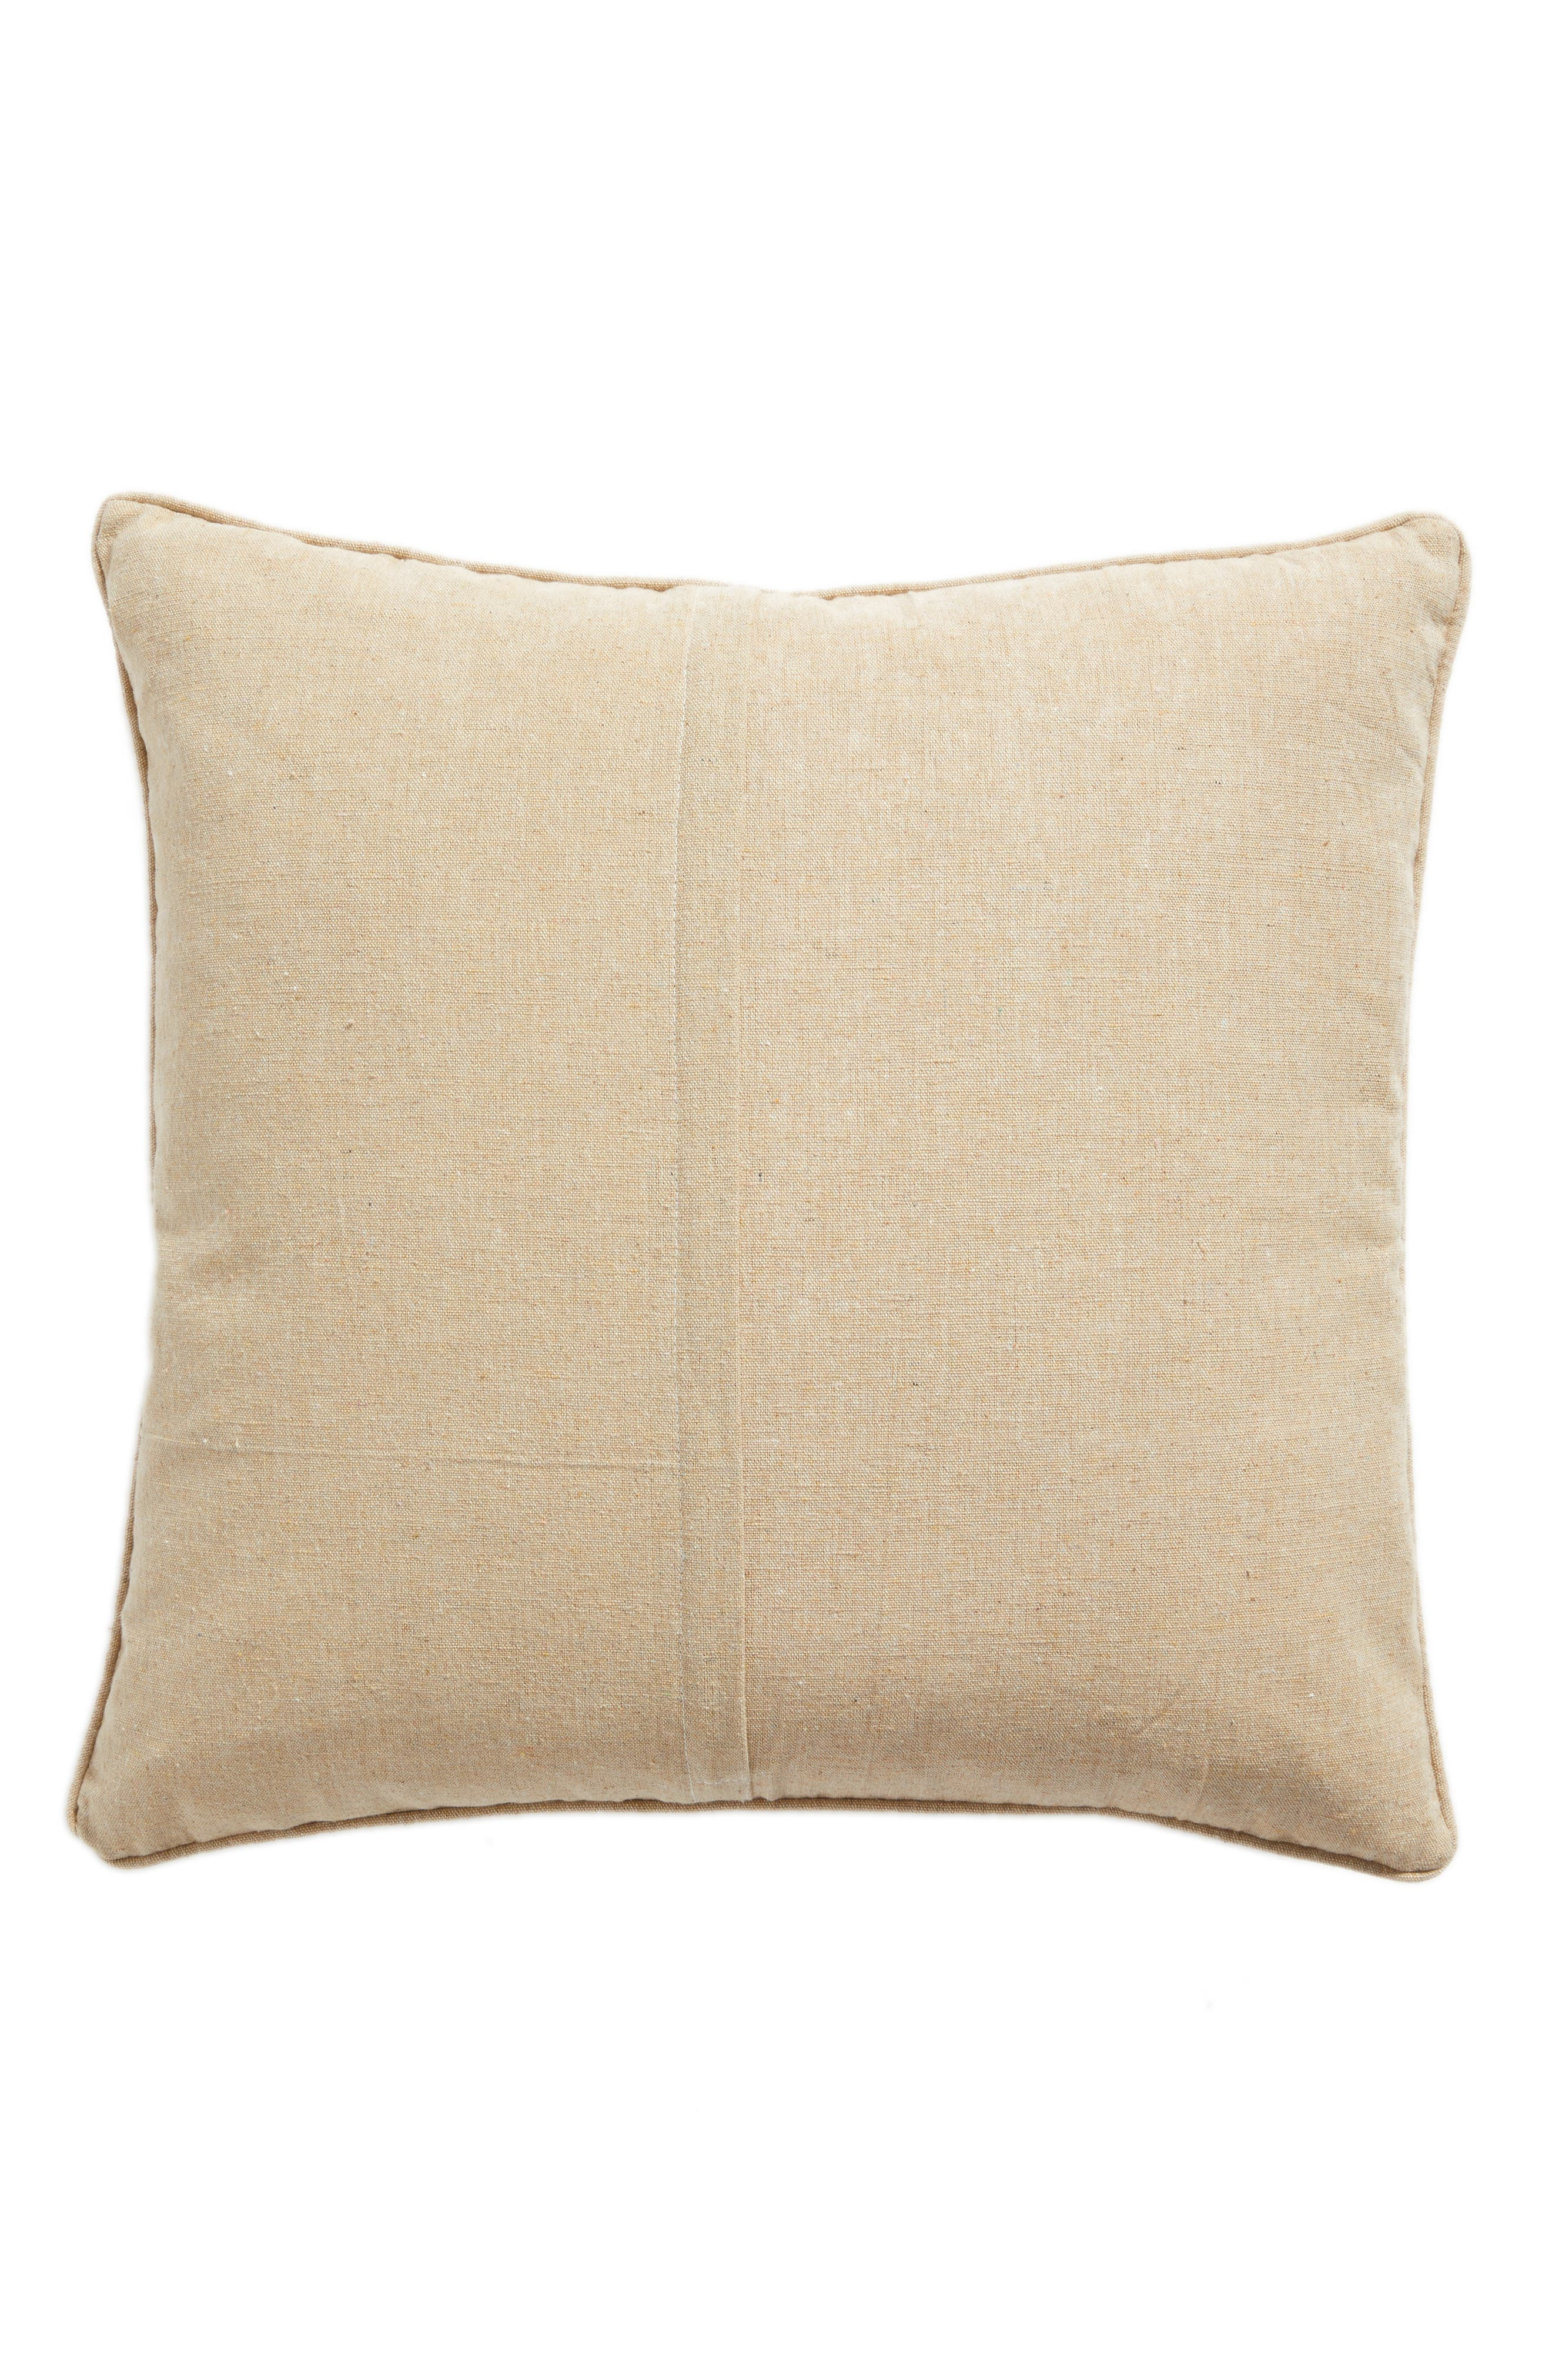 Save the Drama For Your Llama Pillow,                             Alternate thumbnail 2, color,                             250